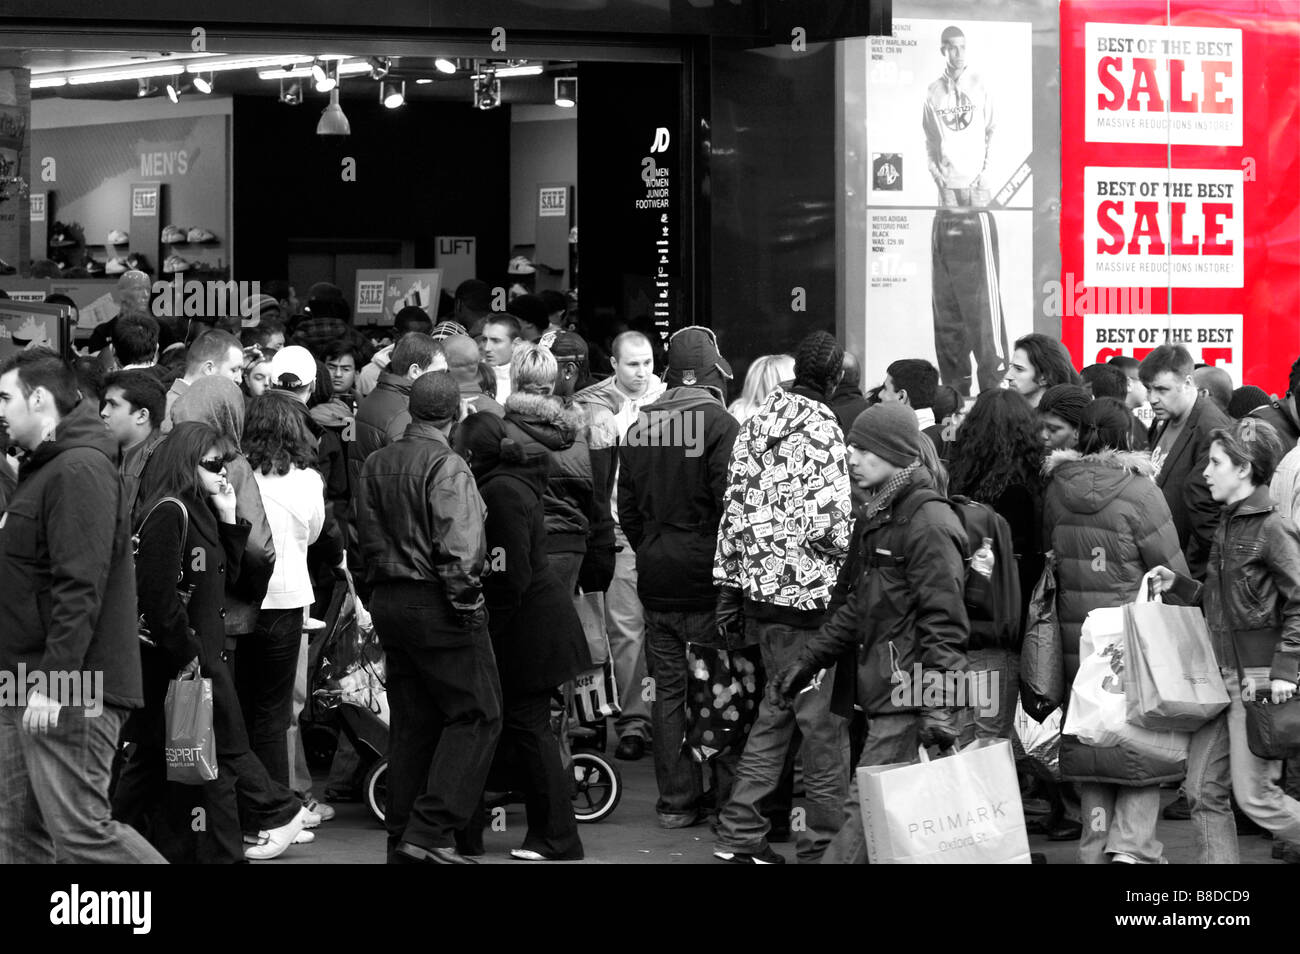 Sale obsession during Boxing Day at Oxford street. London - Stock Image